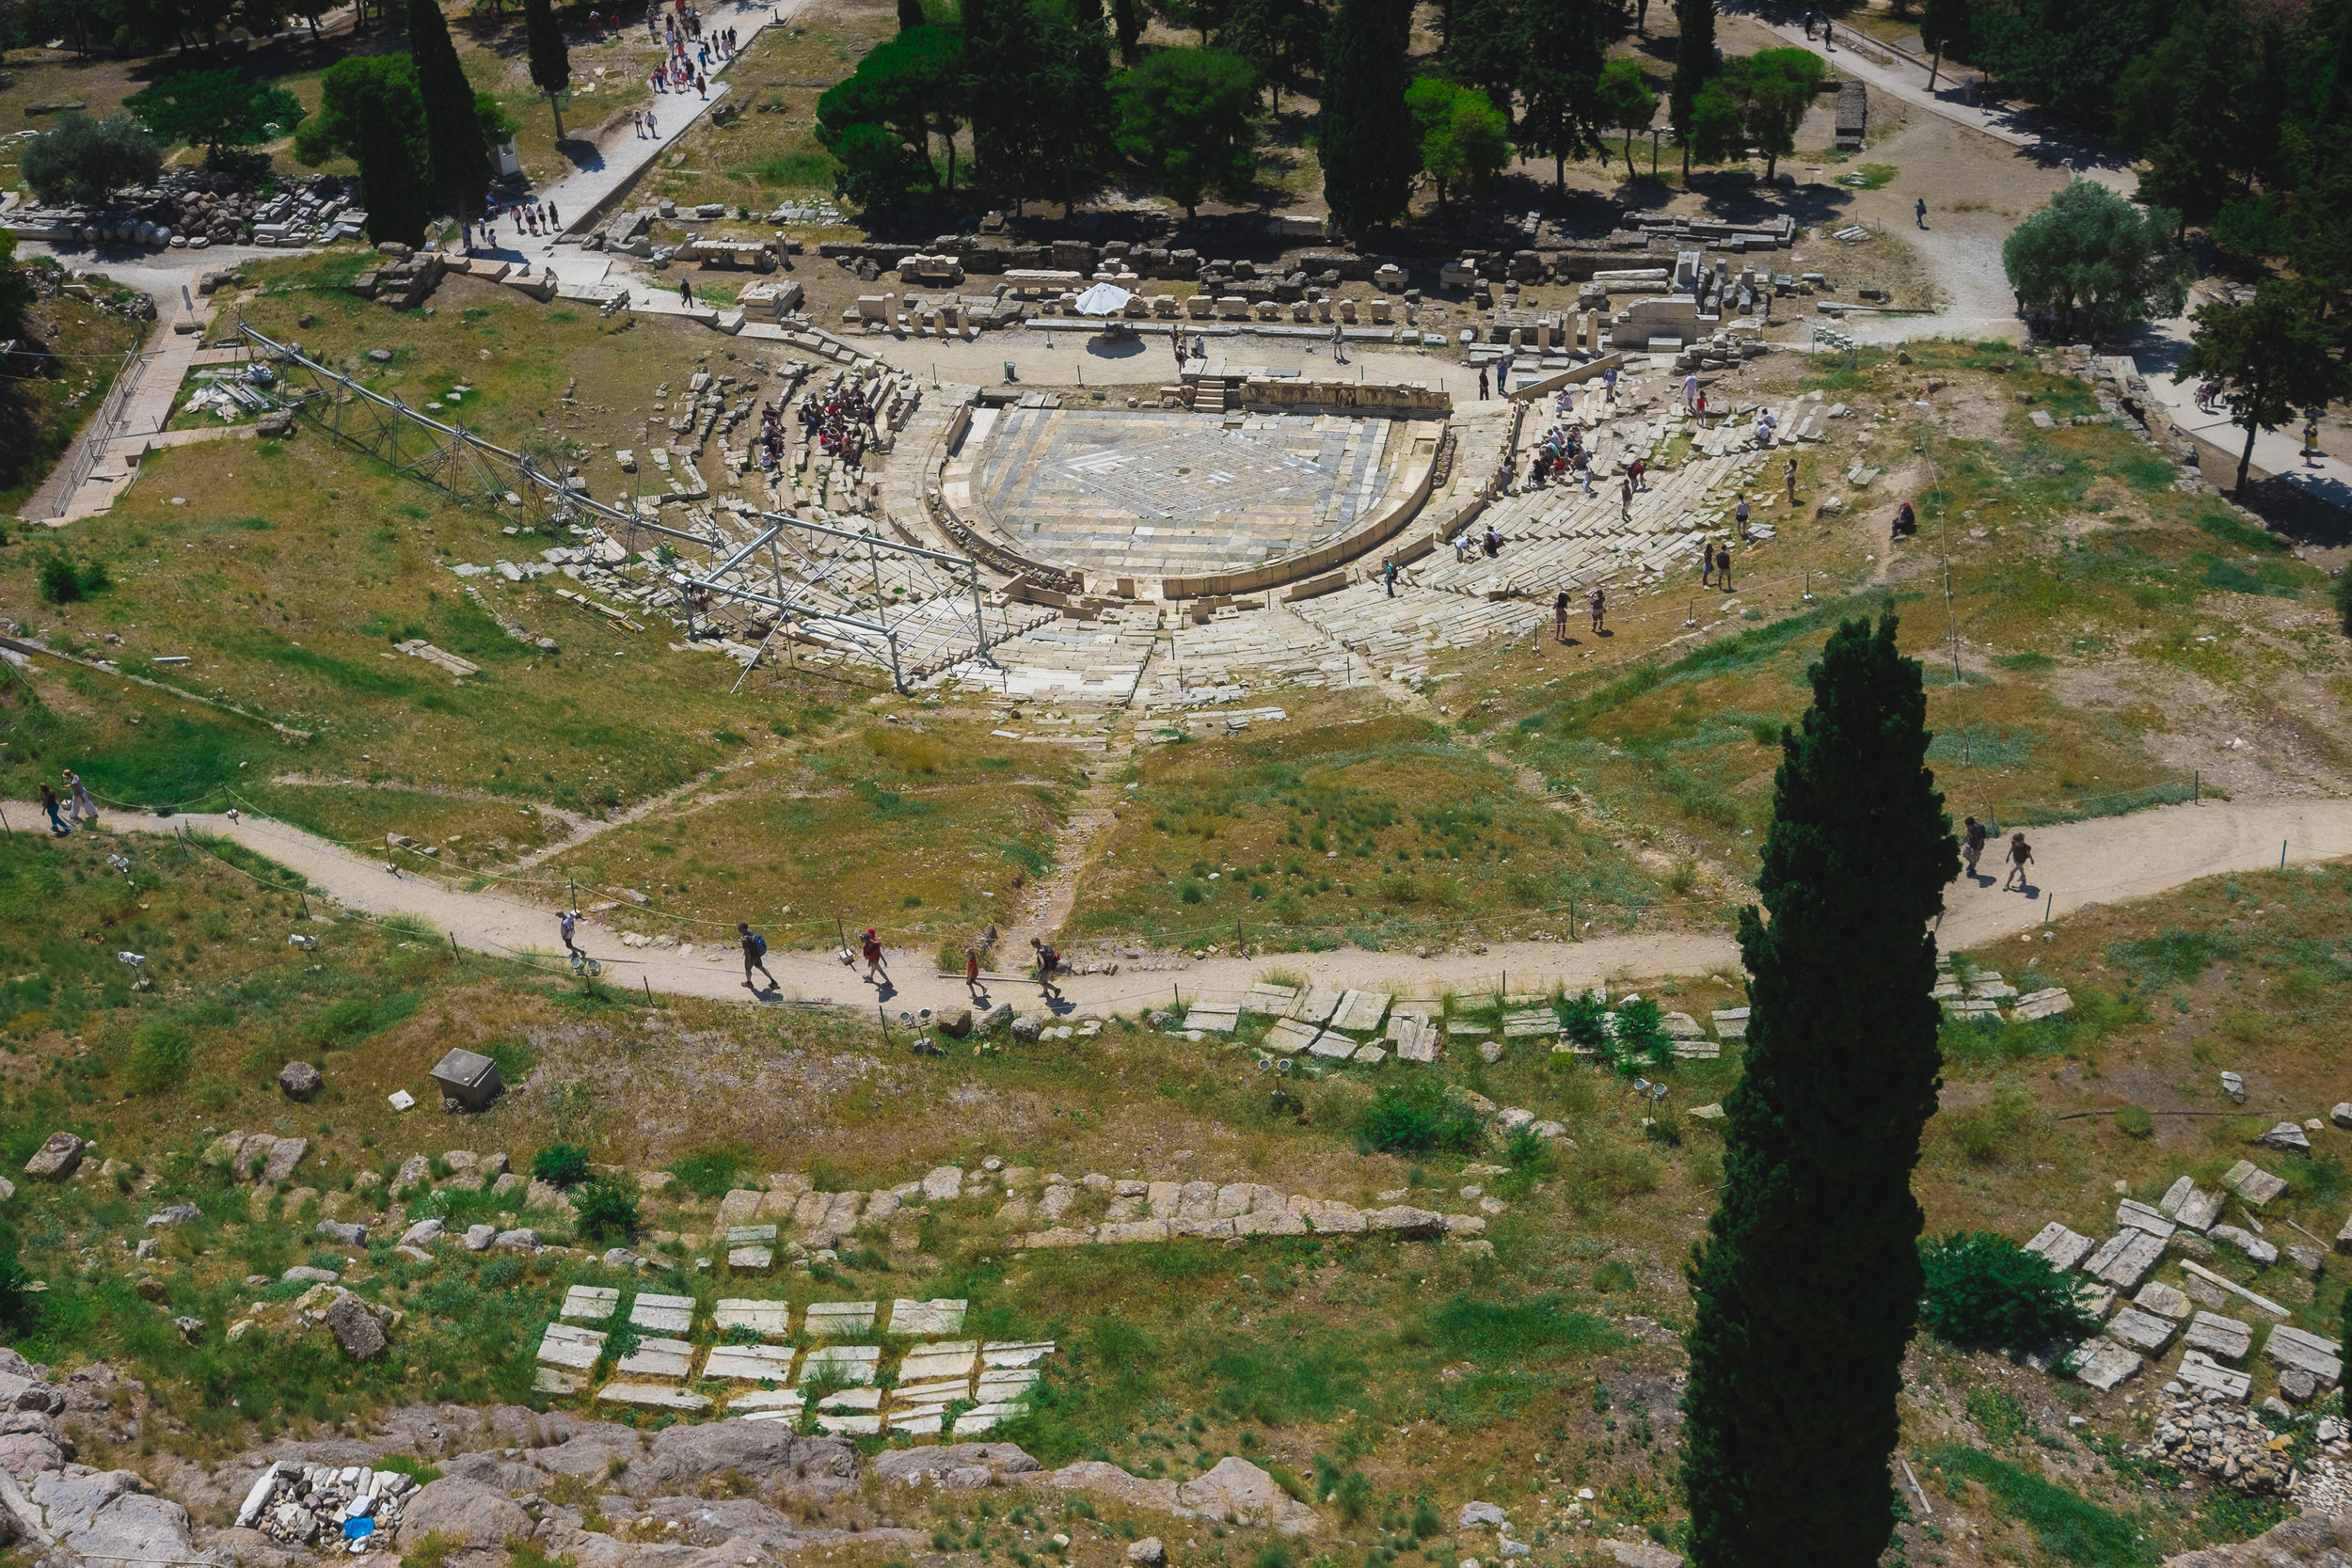 Amphitheatre from above